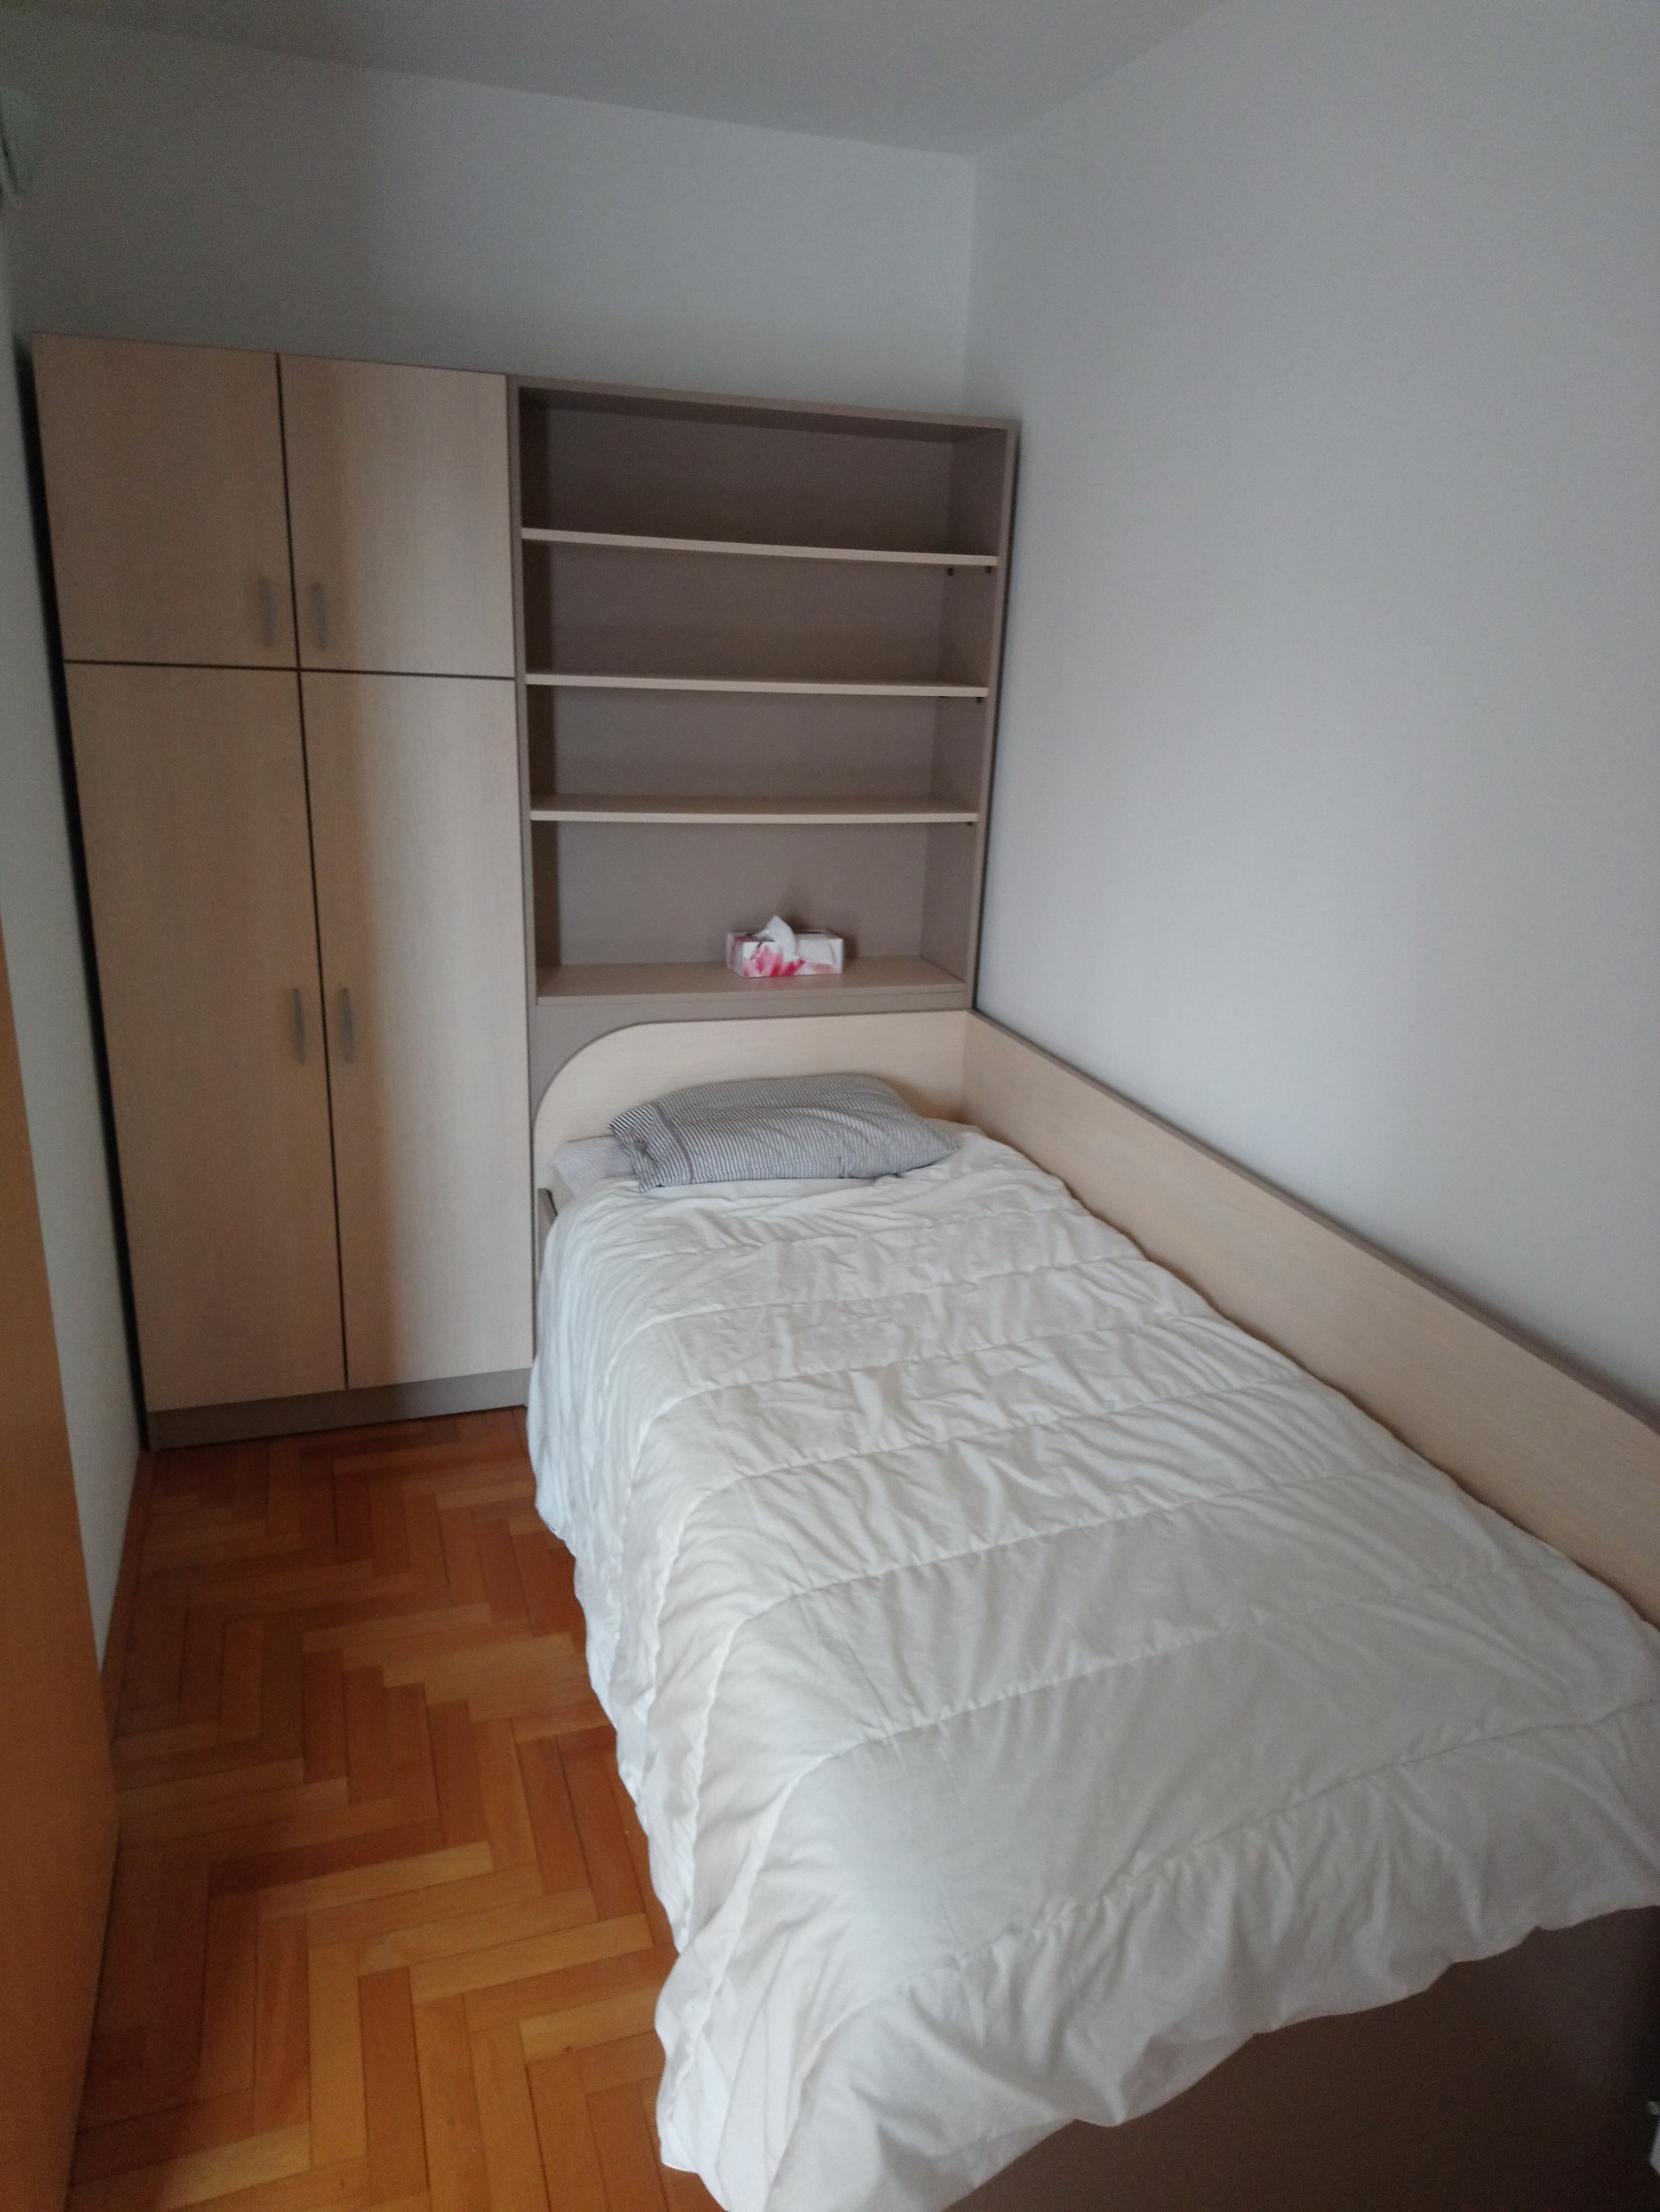 room-standards-zagrebs-best-point-3908ea72120da29d84188923d6cb4f6b